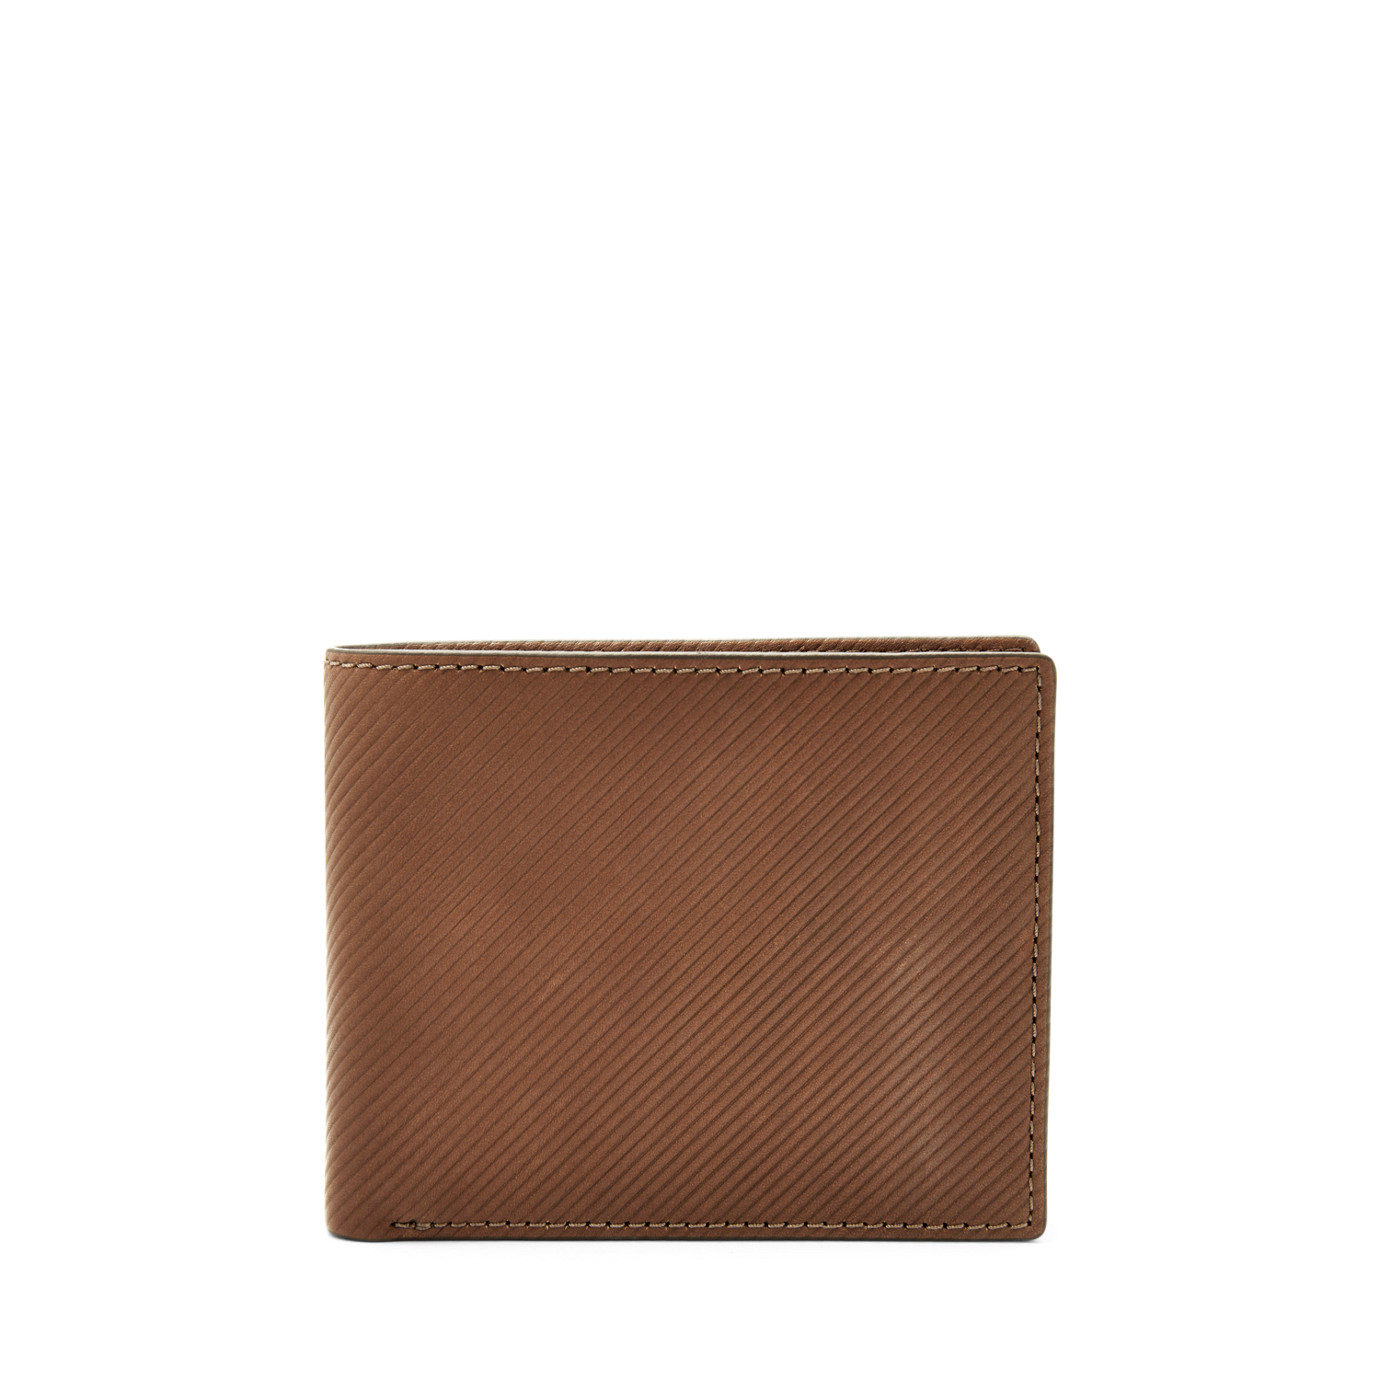 Niles RFID Large Coin Pocket Bifold